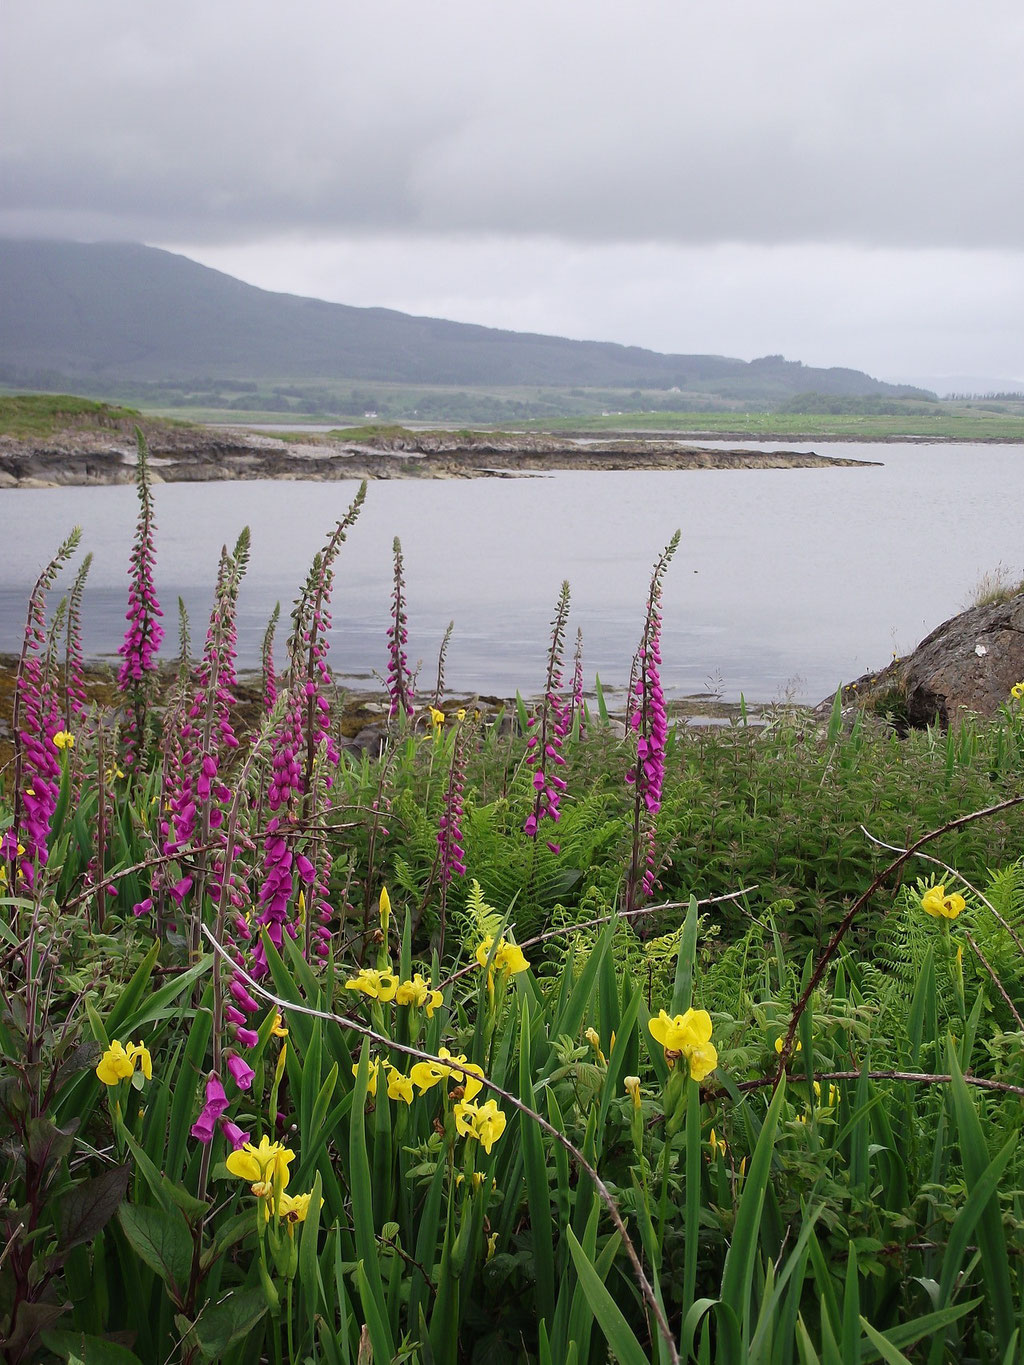 Fox gloves, yellow iris, flowers, Isle of Mull, Scotland